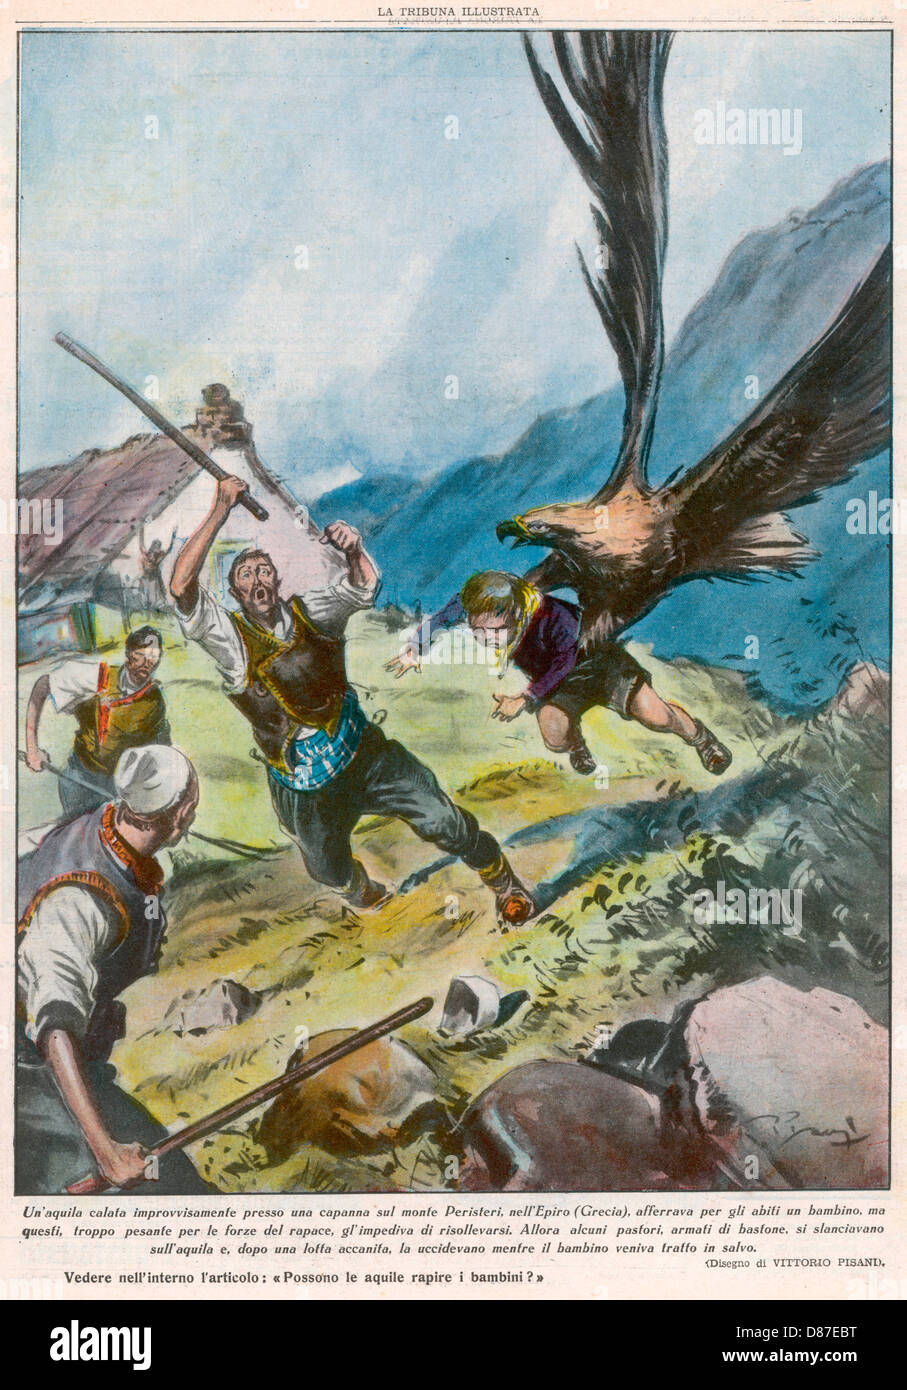 Eagle Attempts Abduction - Stock Image